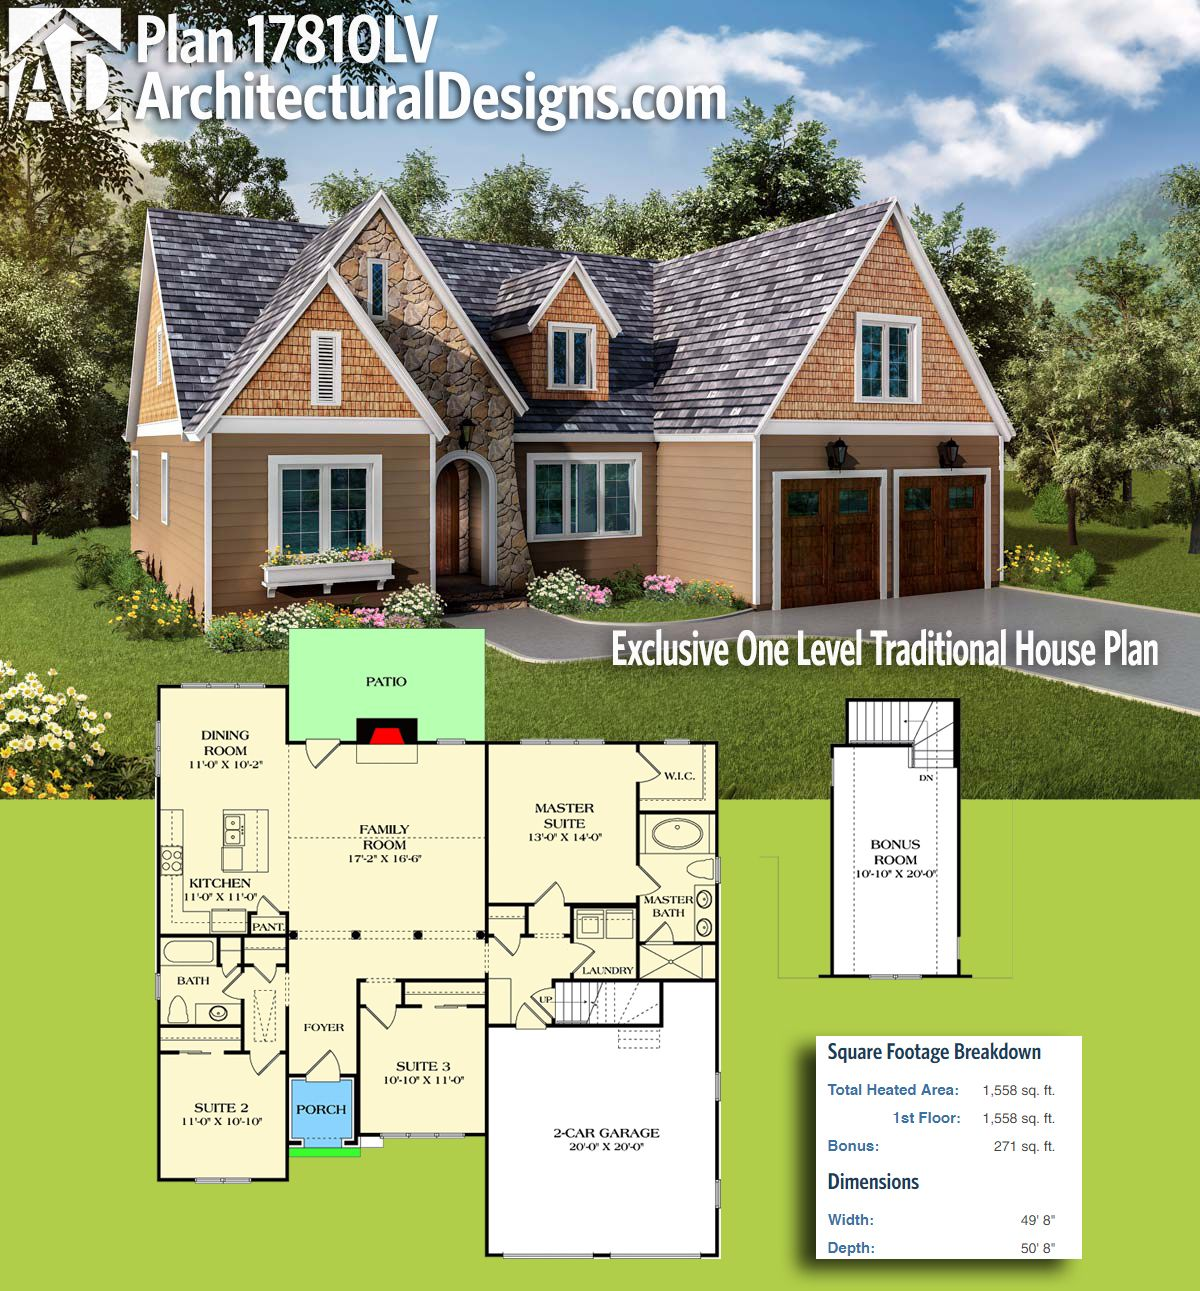 Plan 17810LV: Exclusive One Level Traditional House Plan | Pinterest ...